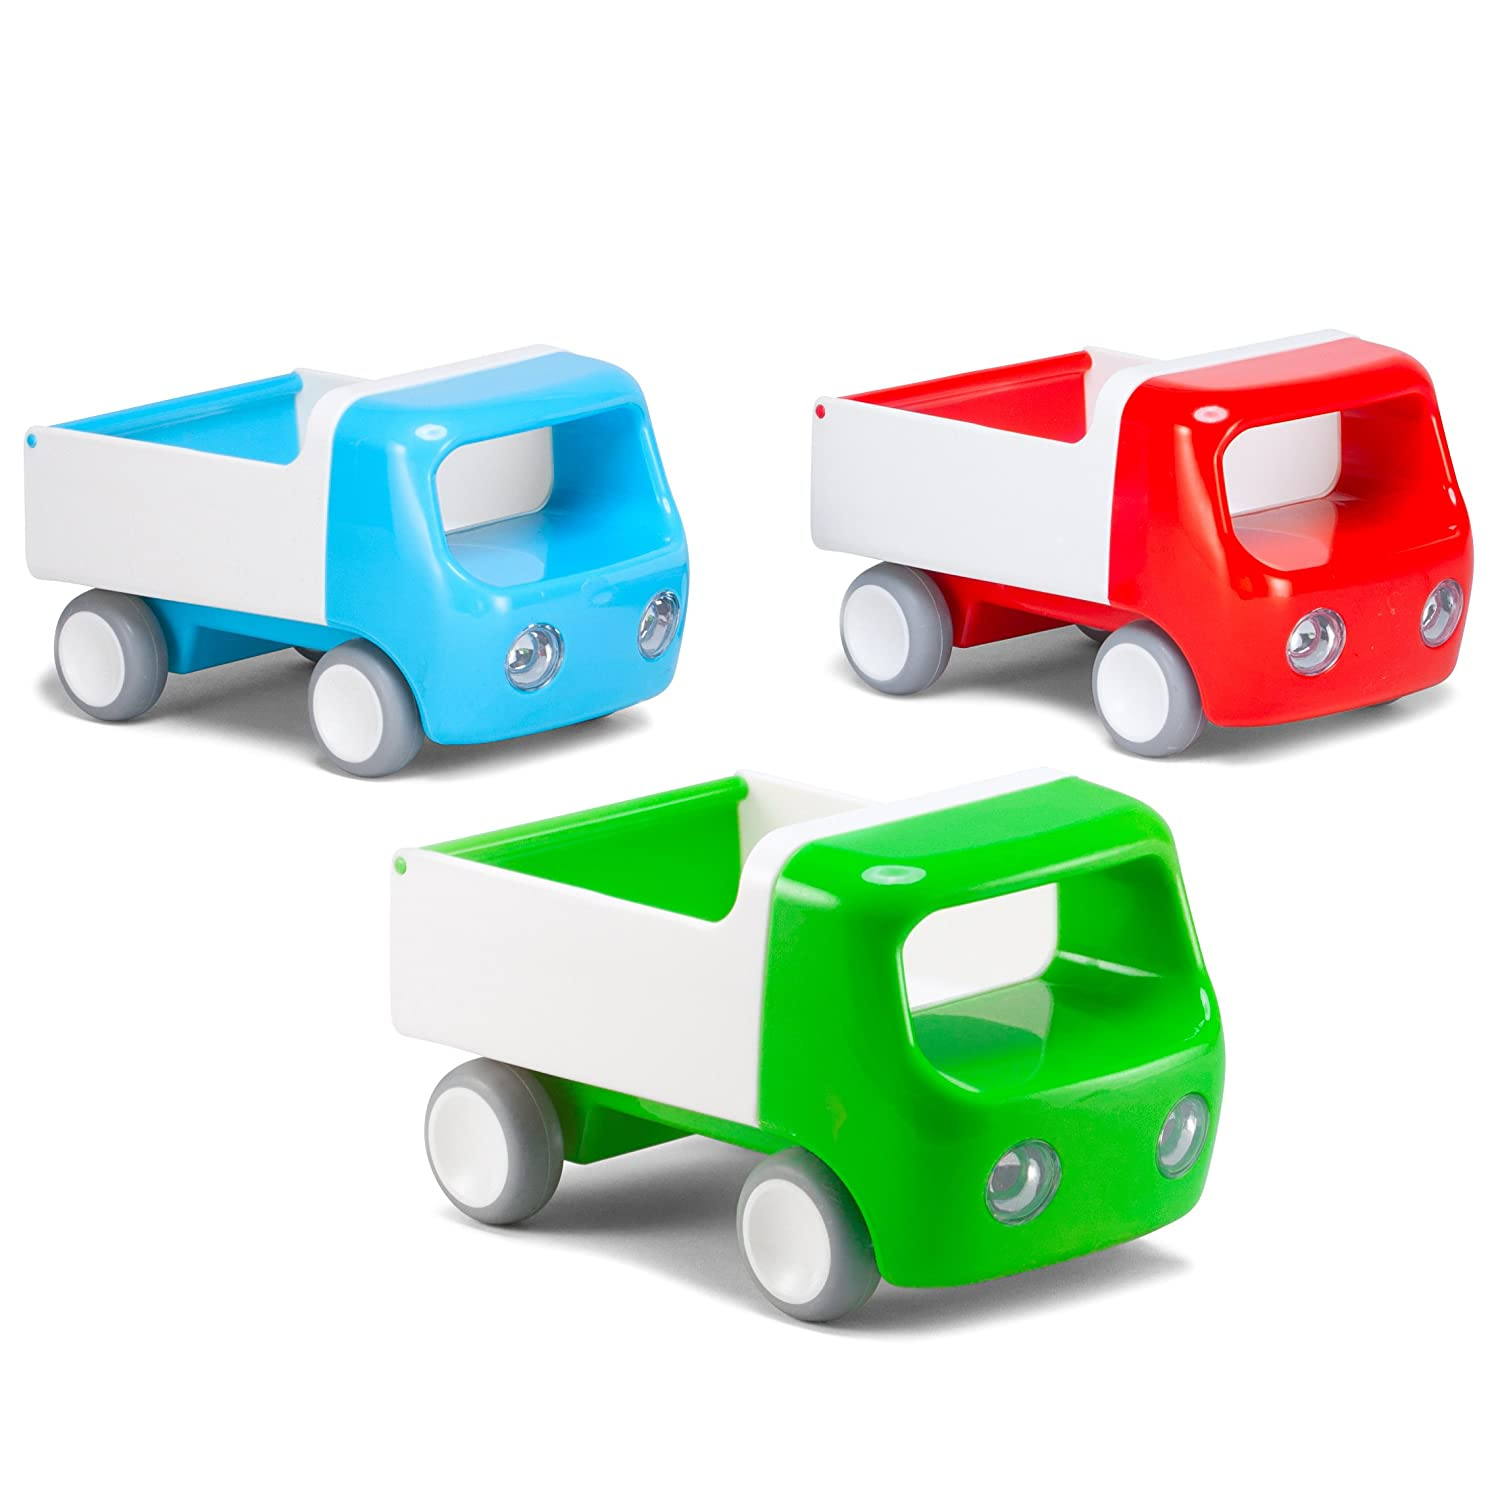 Toy Trucks For Boys : Best gifts and toys for year old boys